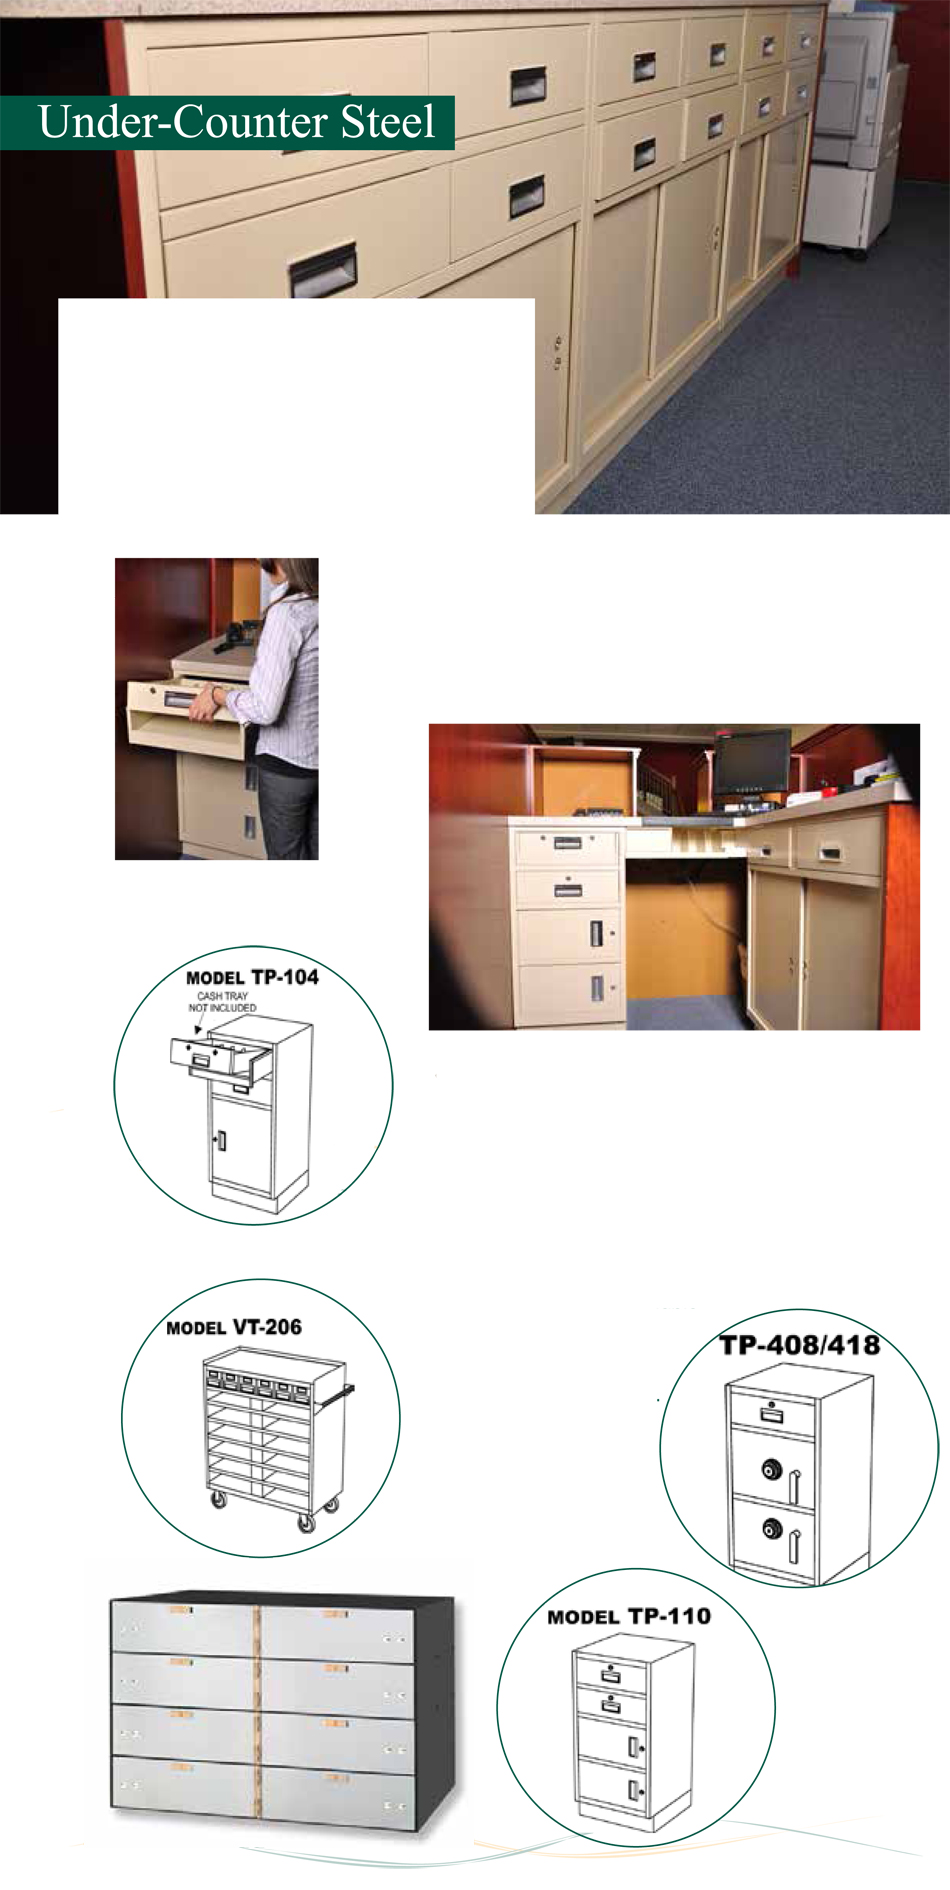 Bank Design and Equipment Under Counter Steel